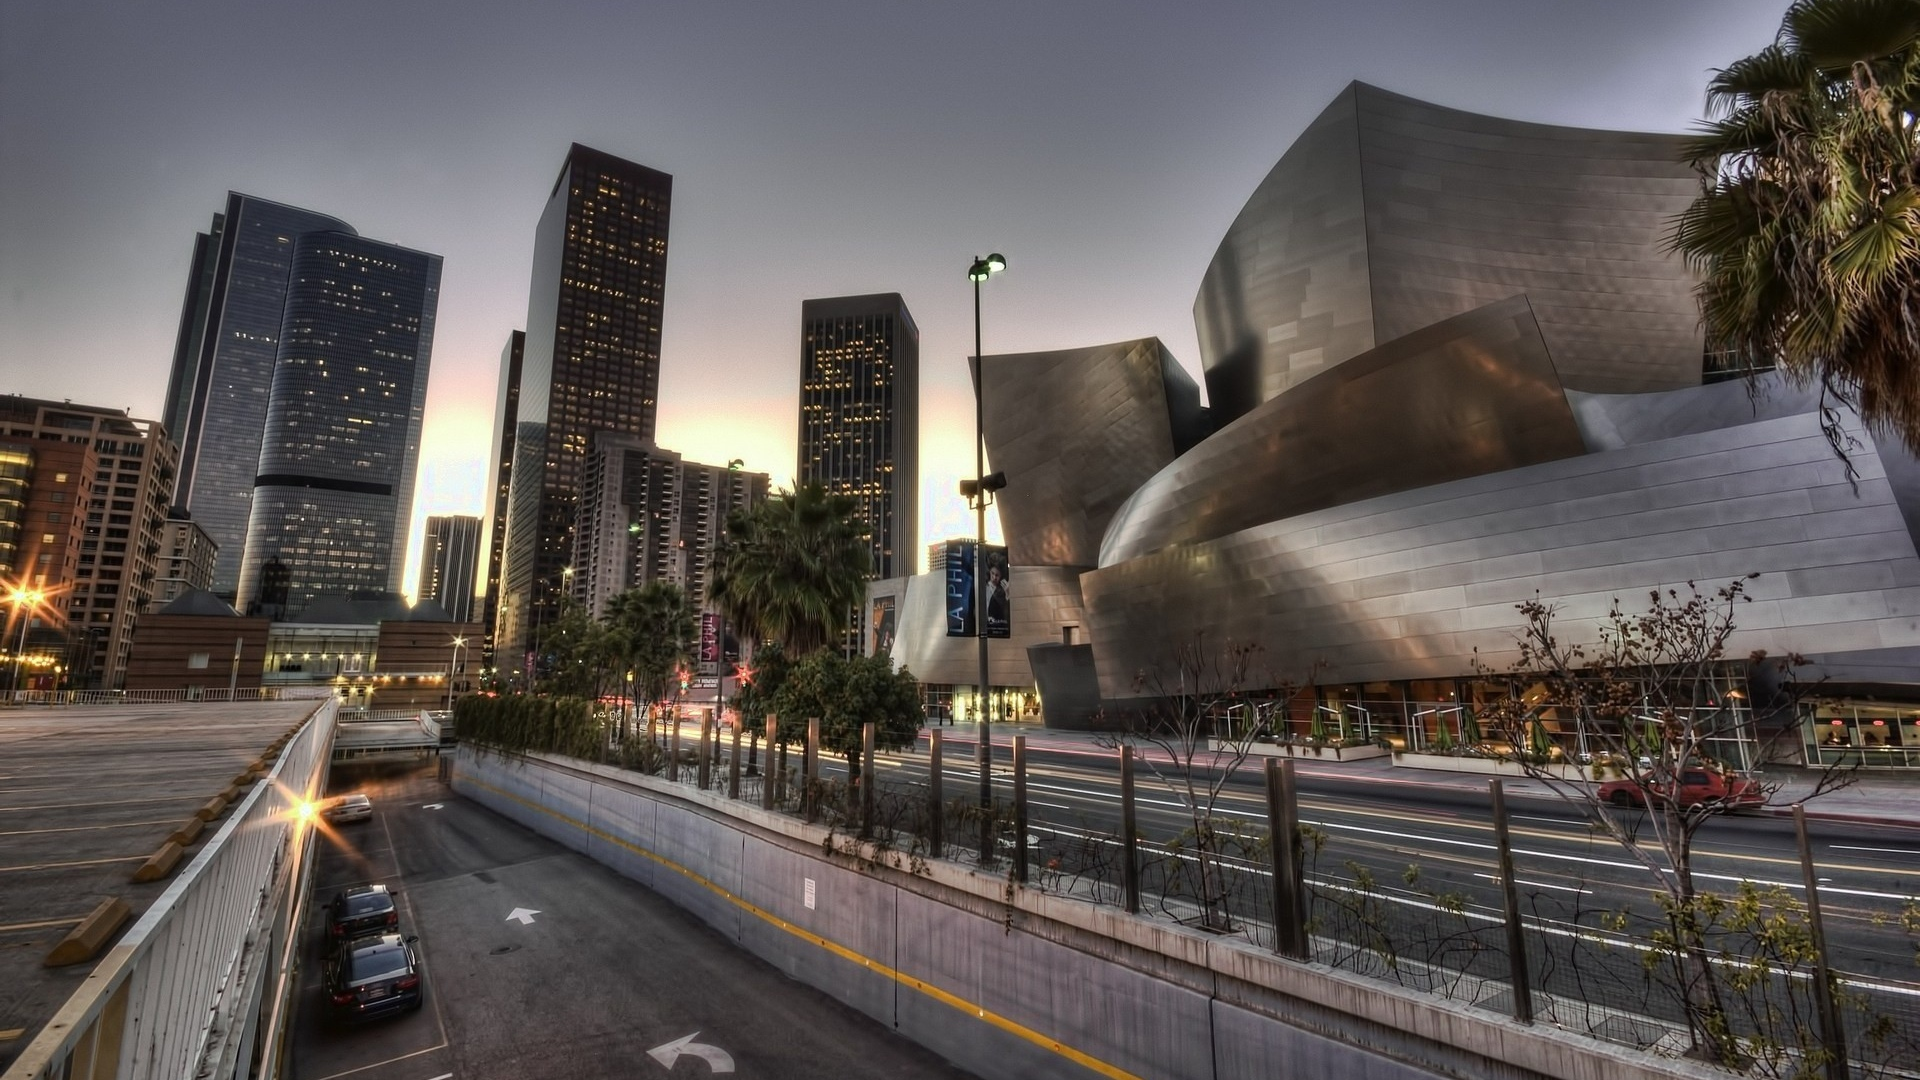 hall los angeles california usa hdr Full HD 1080p HD Background 1920x1080